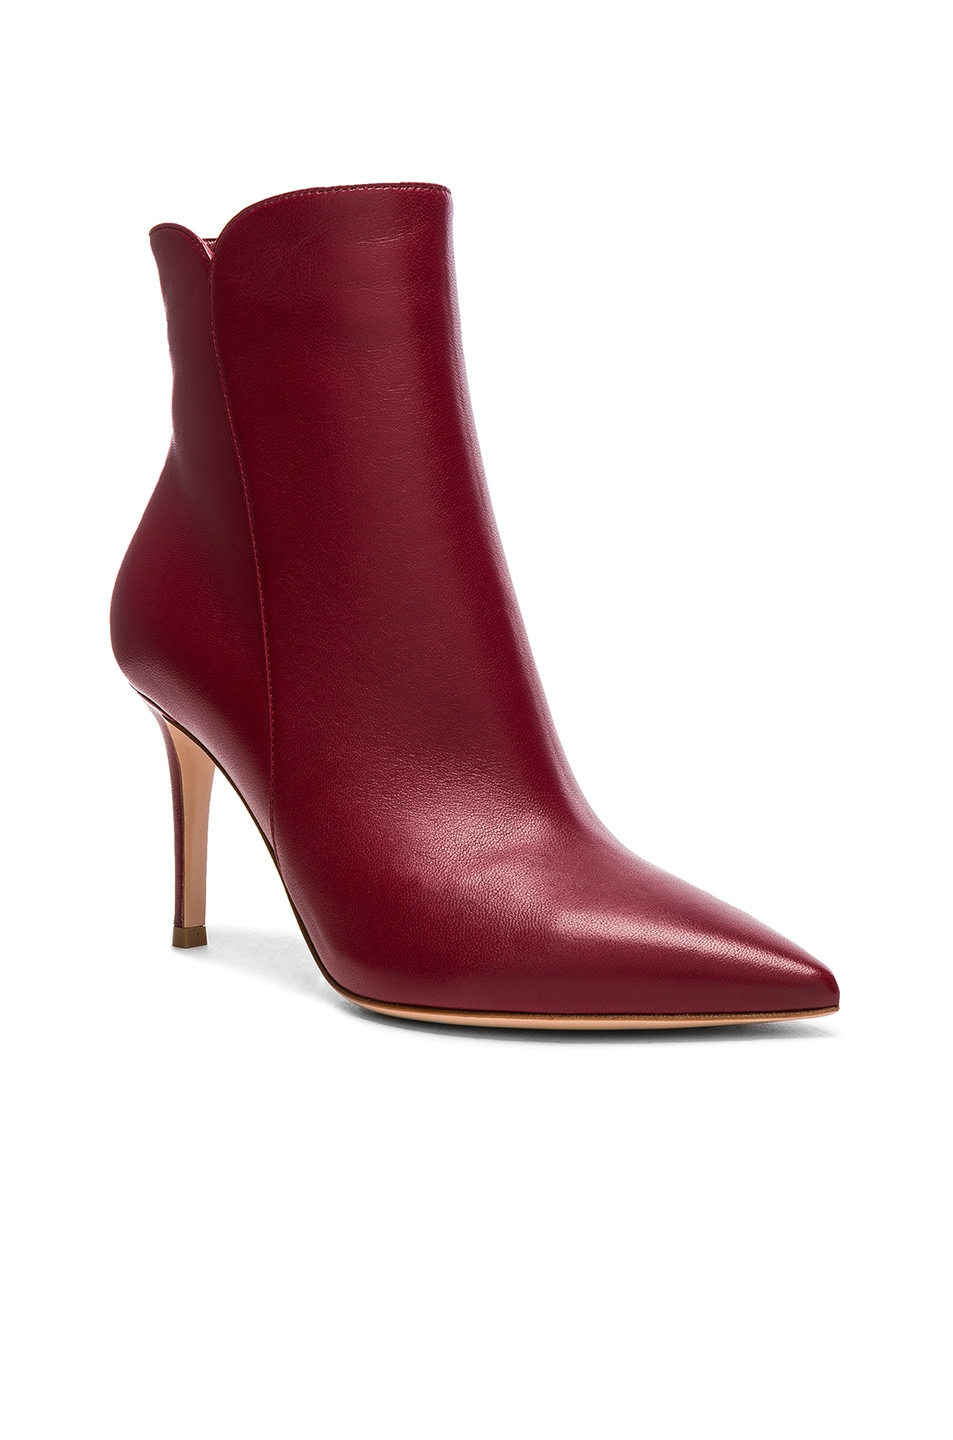 Image 2 of Gianvito Rossi Leather Levy Ankle Boots in Syrah